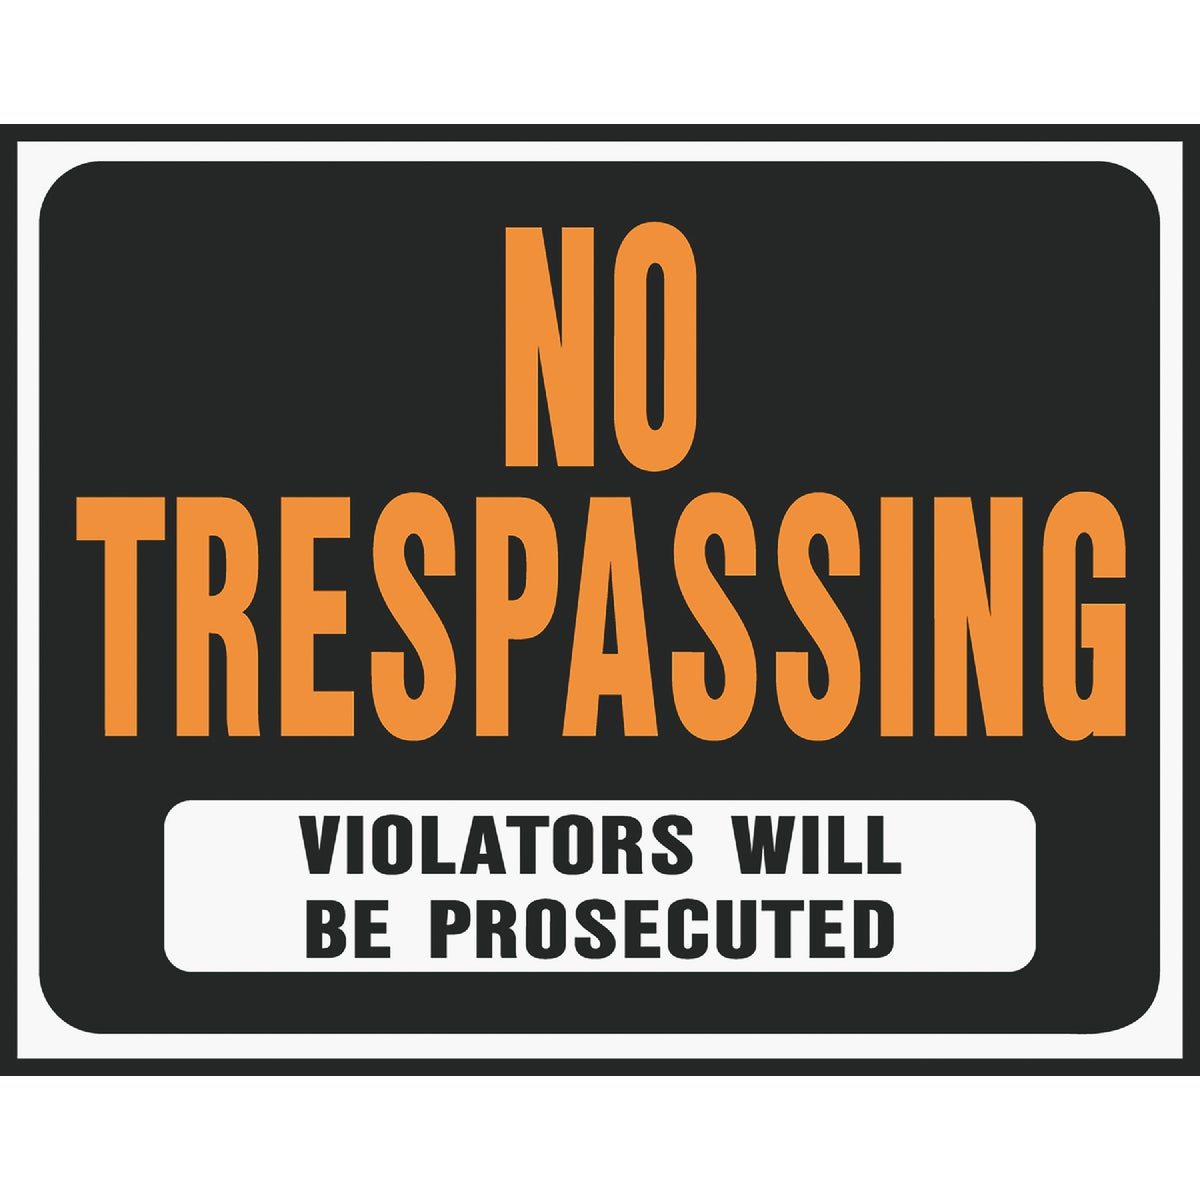 15X19 NO TRESPASS SIGN